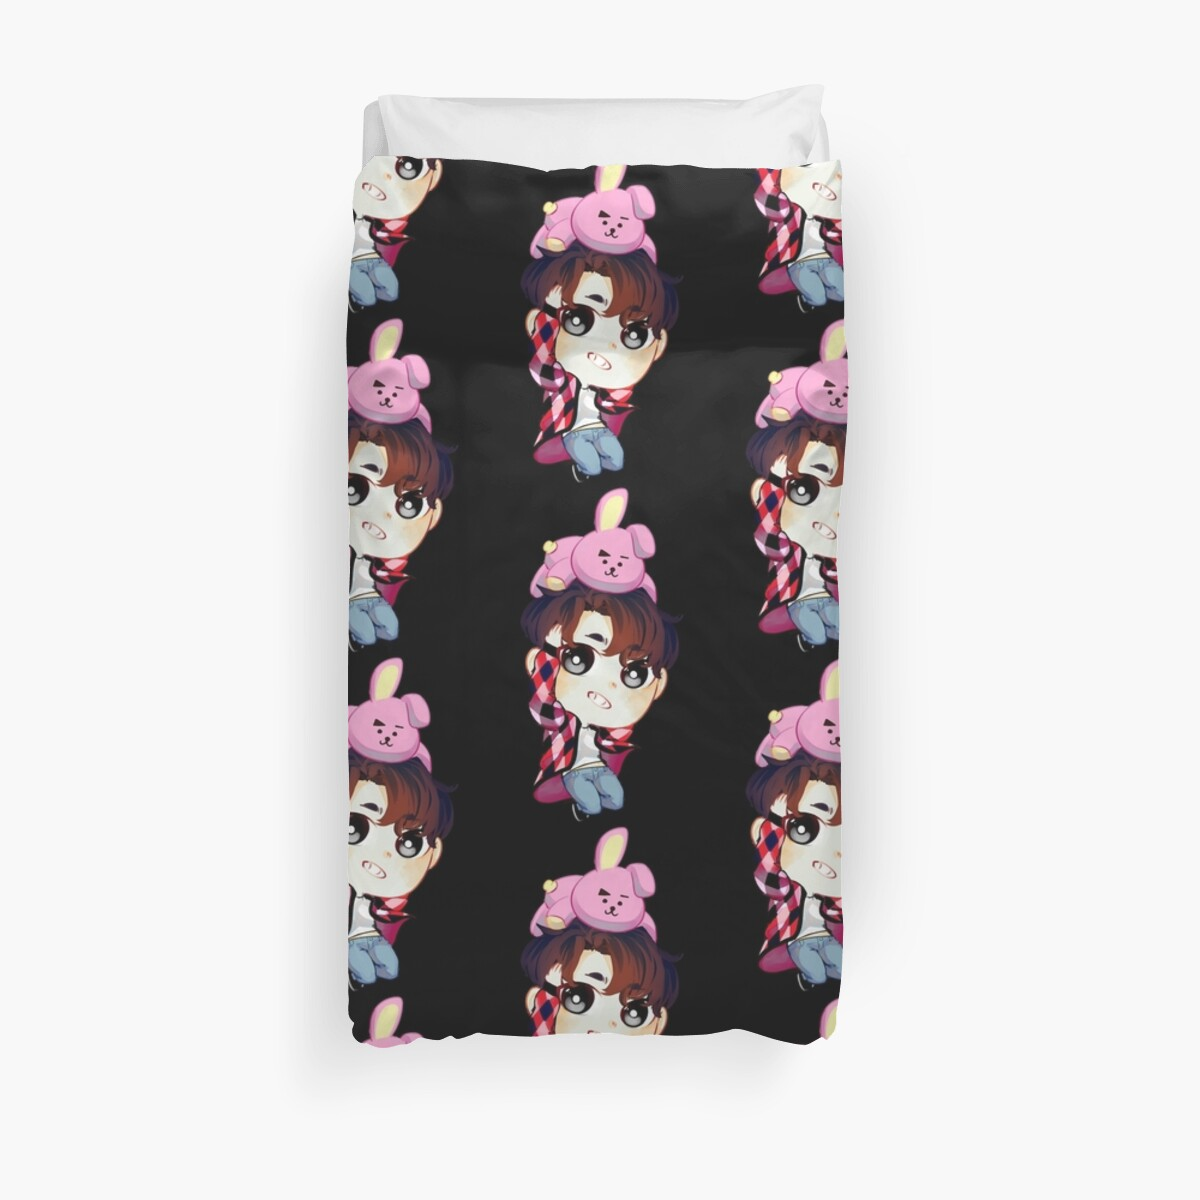 Quot Bts Bt21 Jungkook Quot Duvet Covers By P0zuda Redbubble